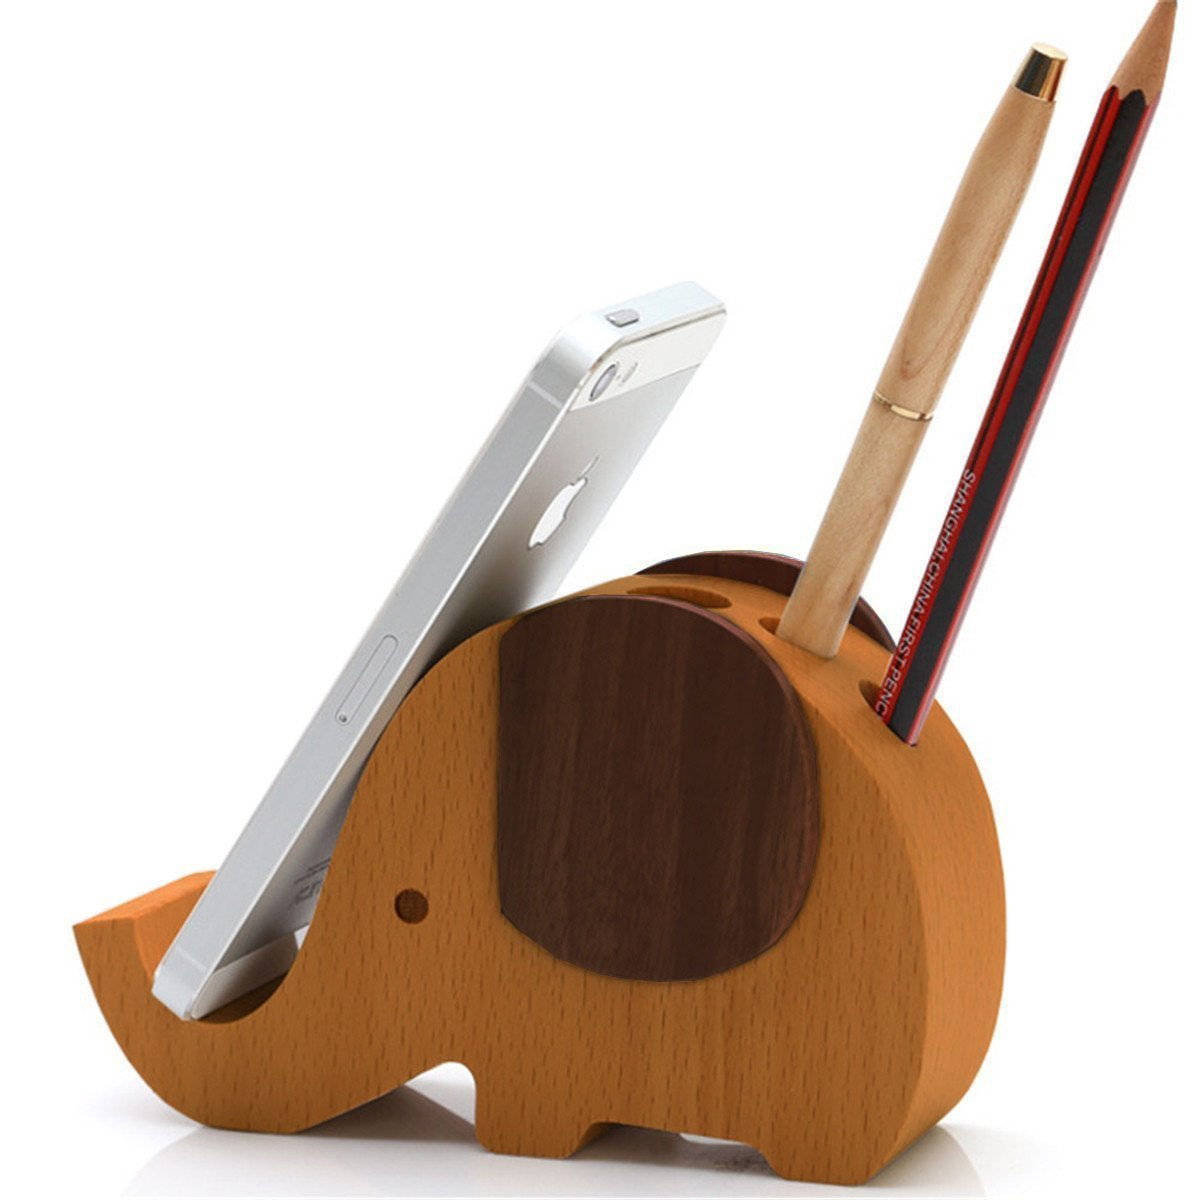 Cell Phone Stand, Wood Elephant Phone Stand Tablet Desk Bracket with Pen Pencil Holder Multifunctional Stationery Organizer (5.2in)